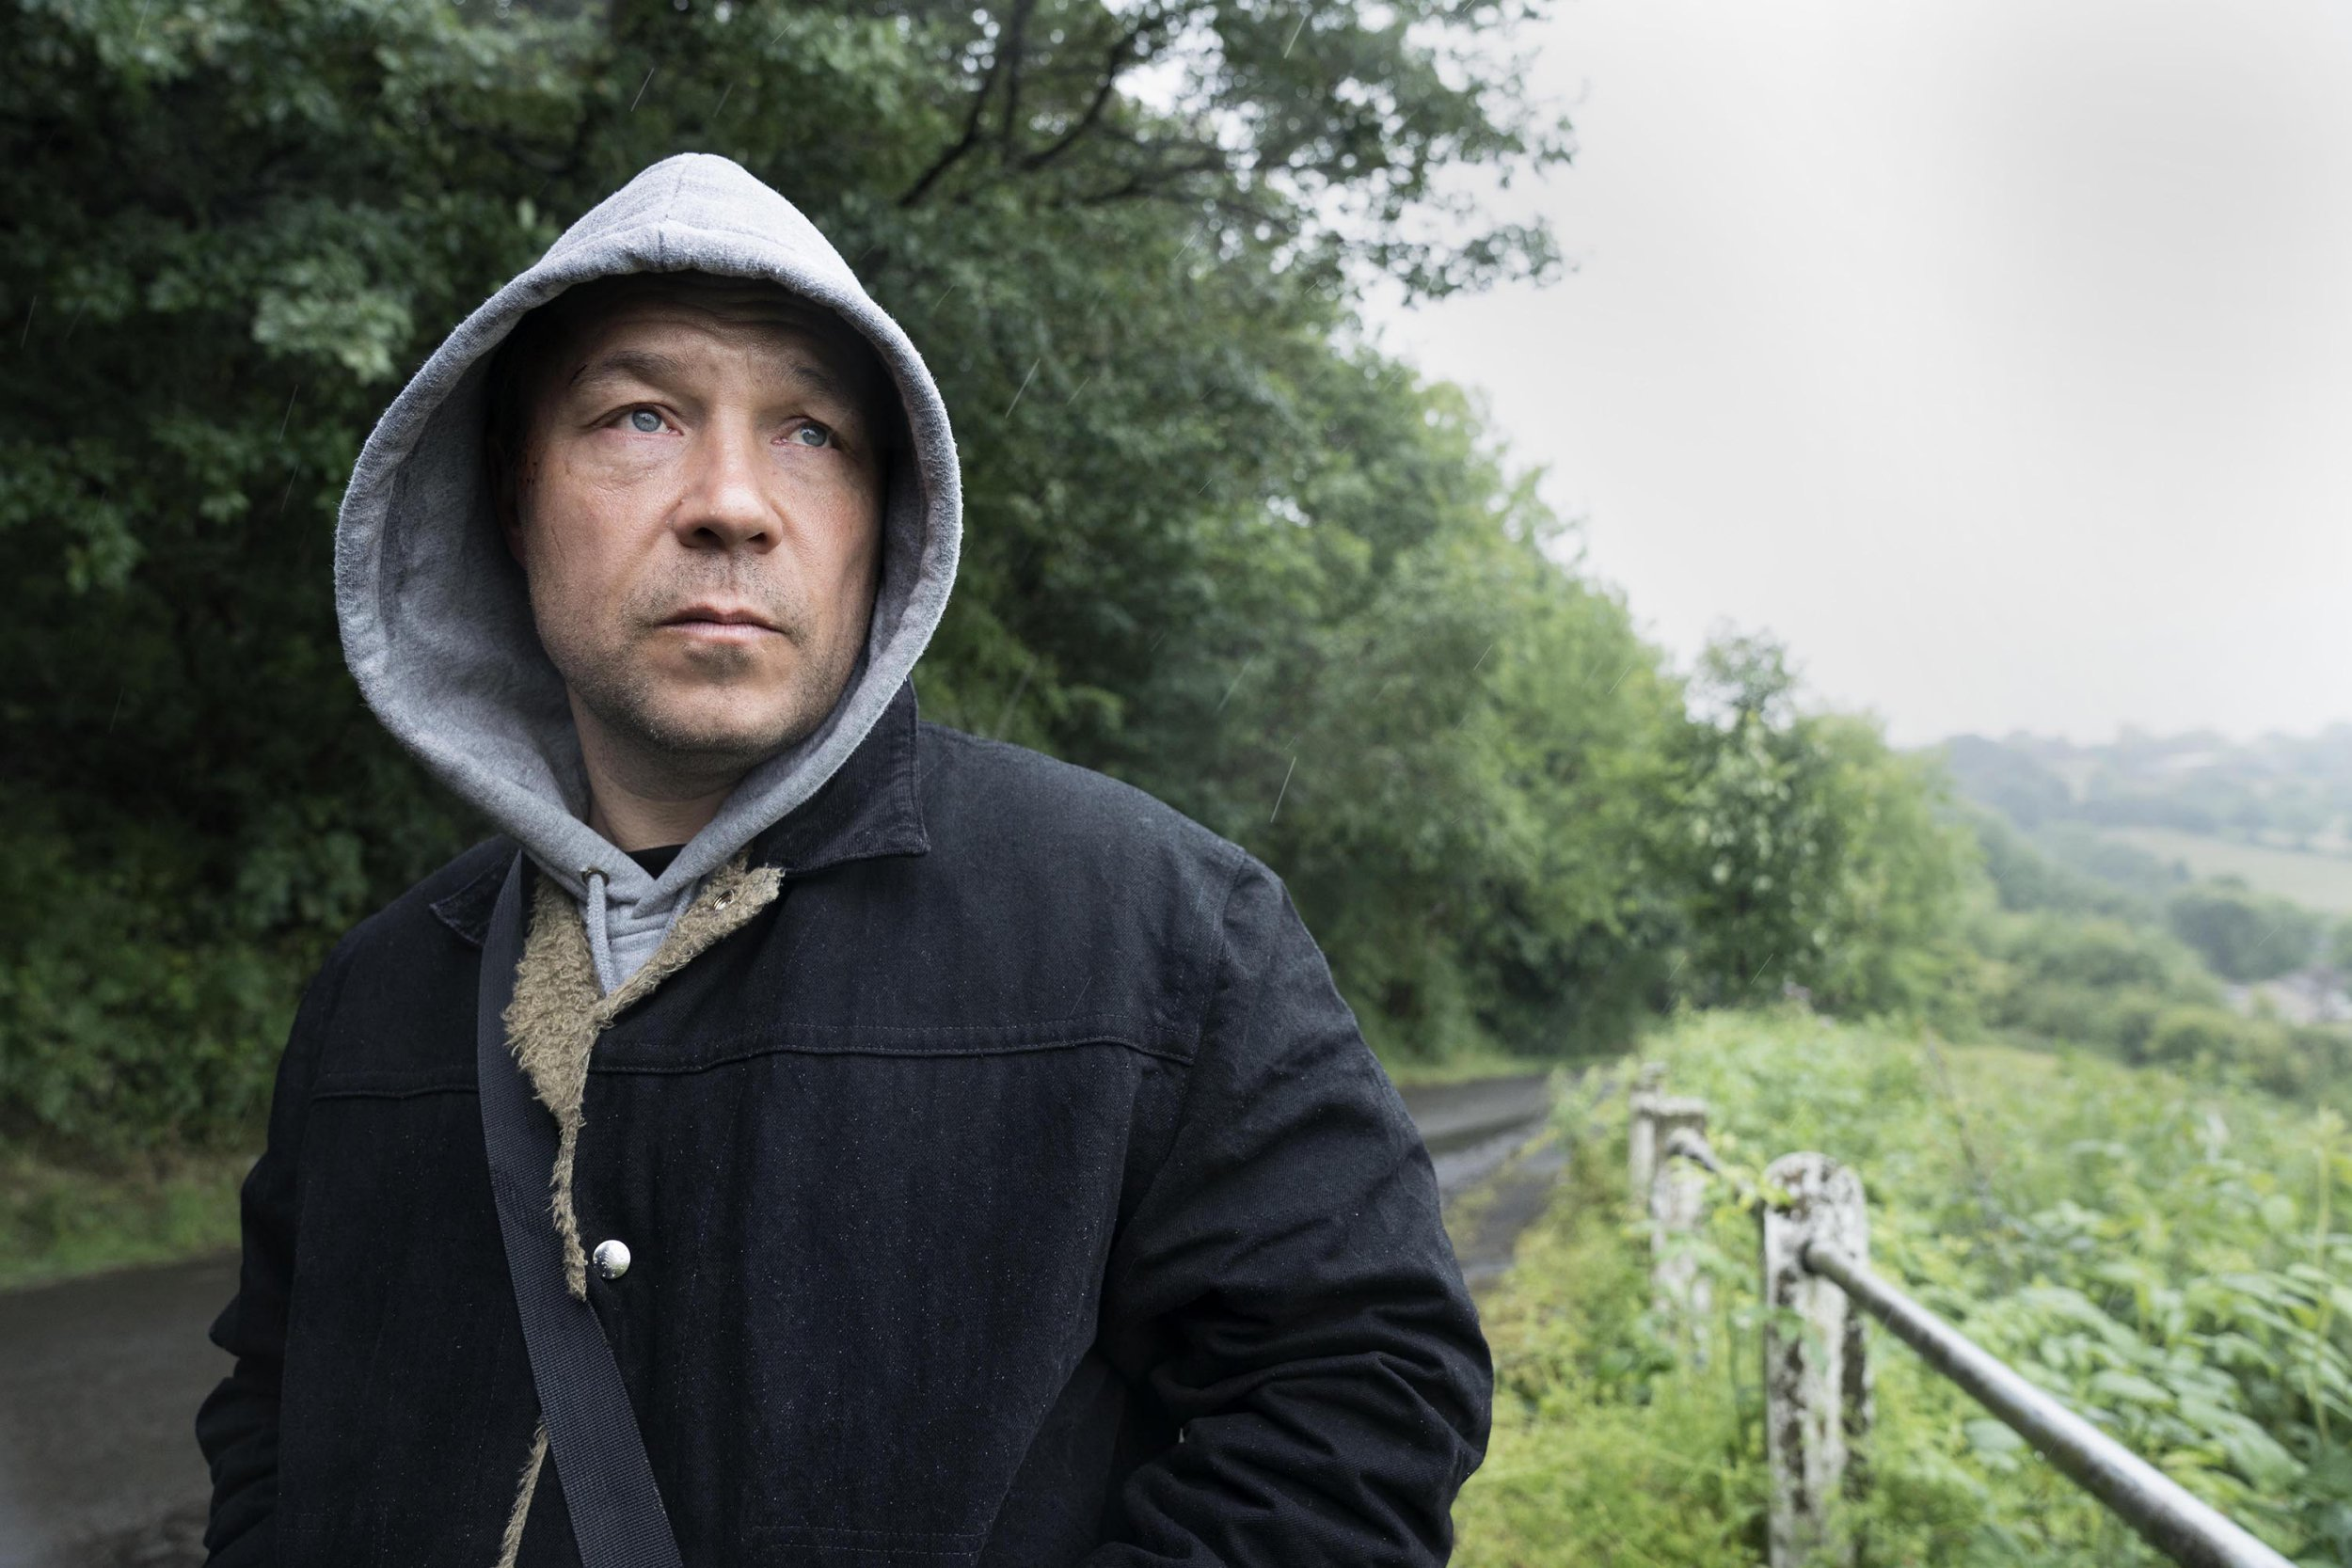 The Virtues review: A slow, heart wrenching drama that proves twists aren't everything